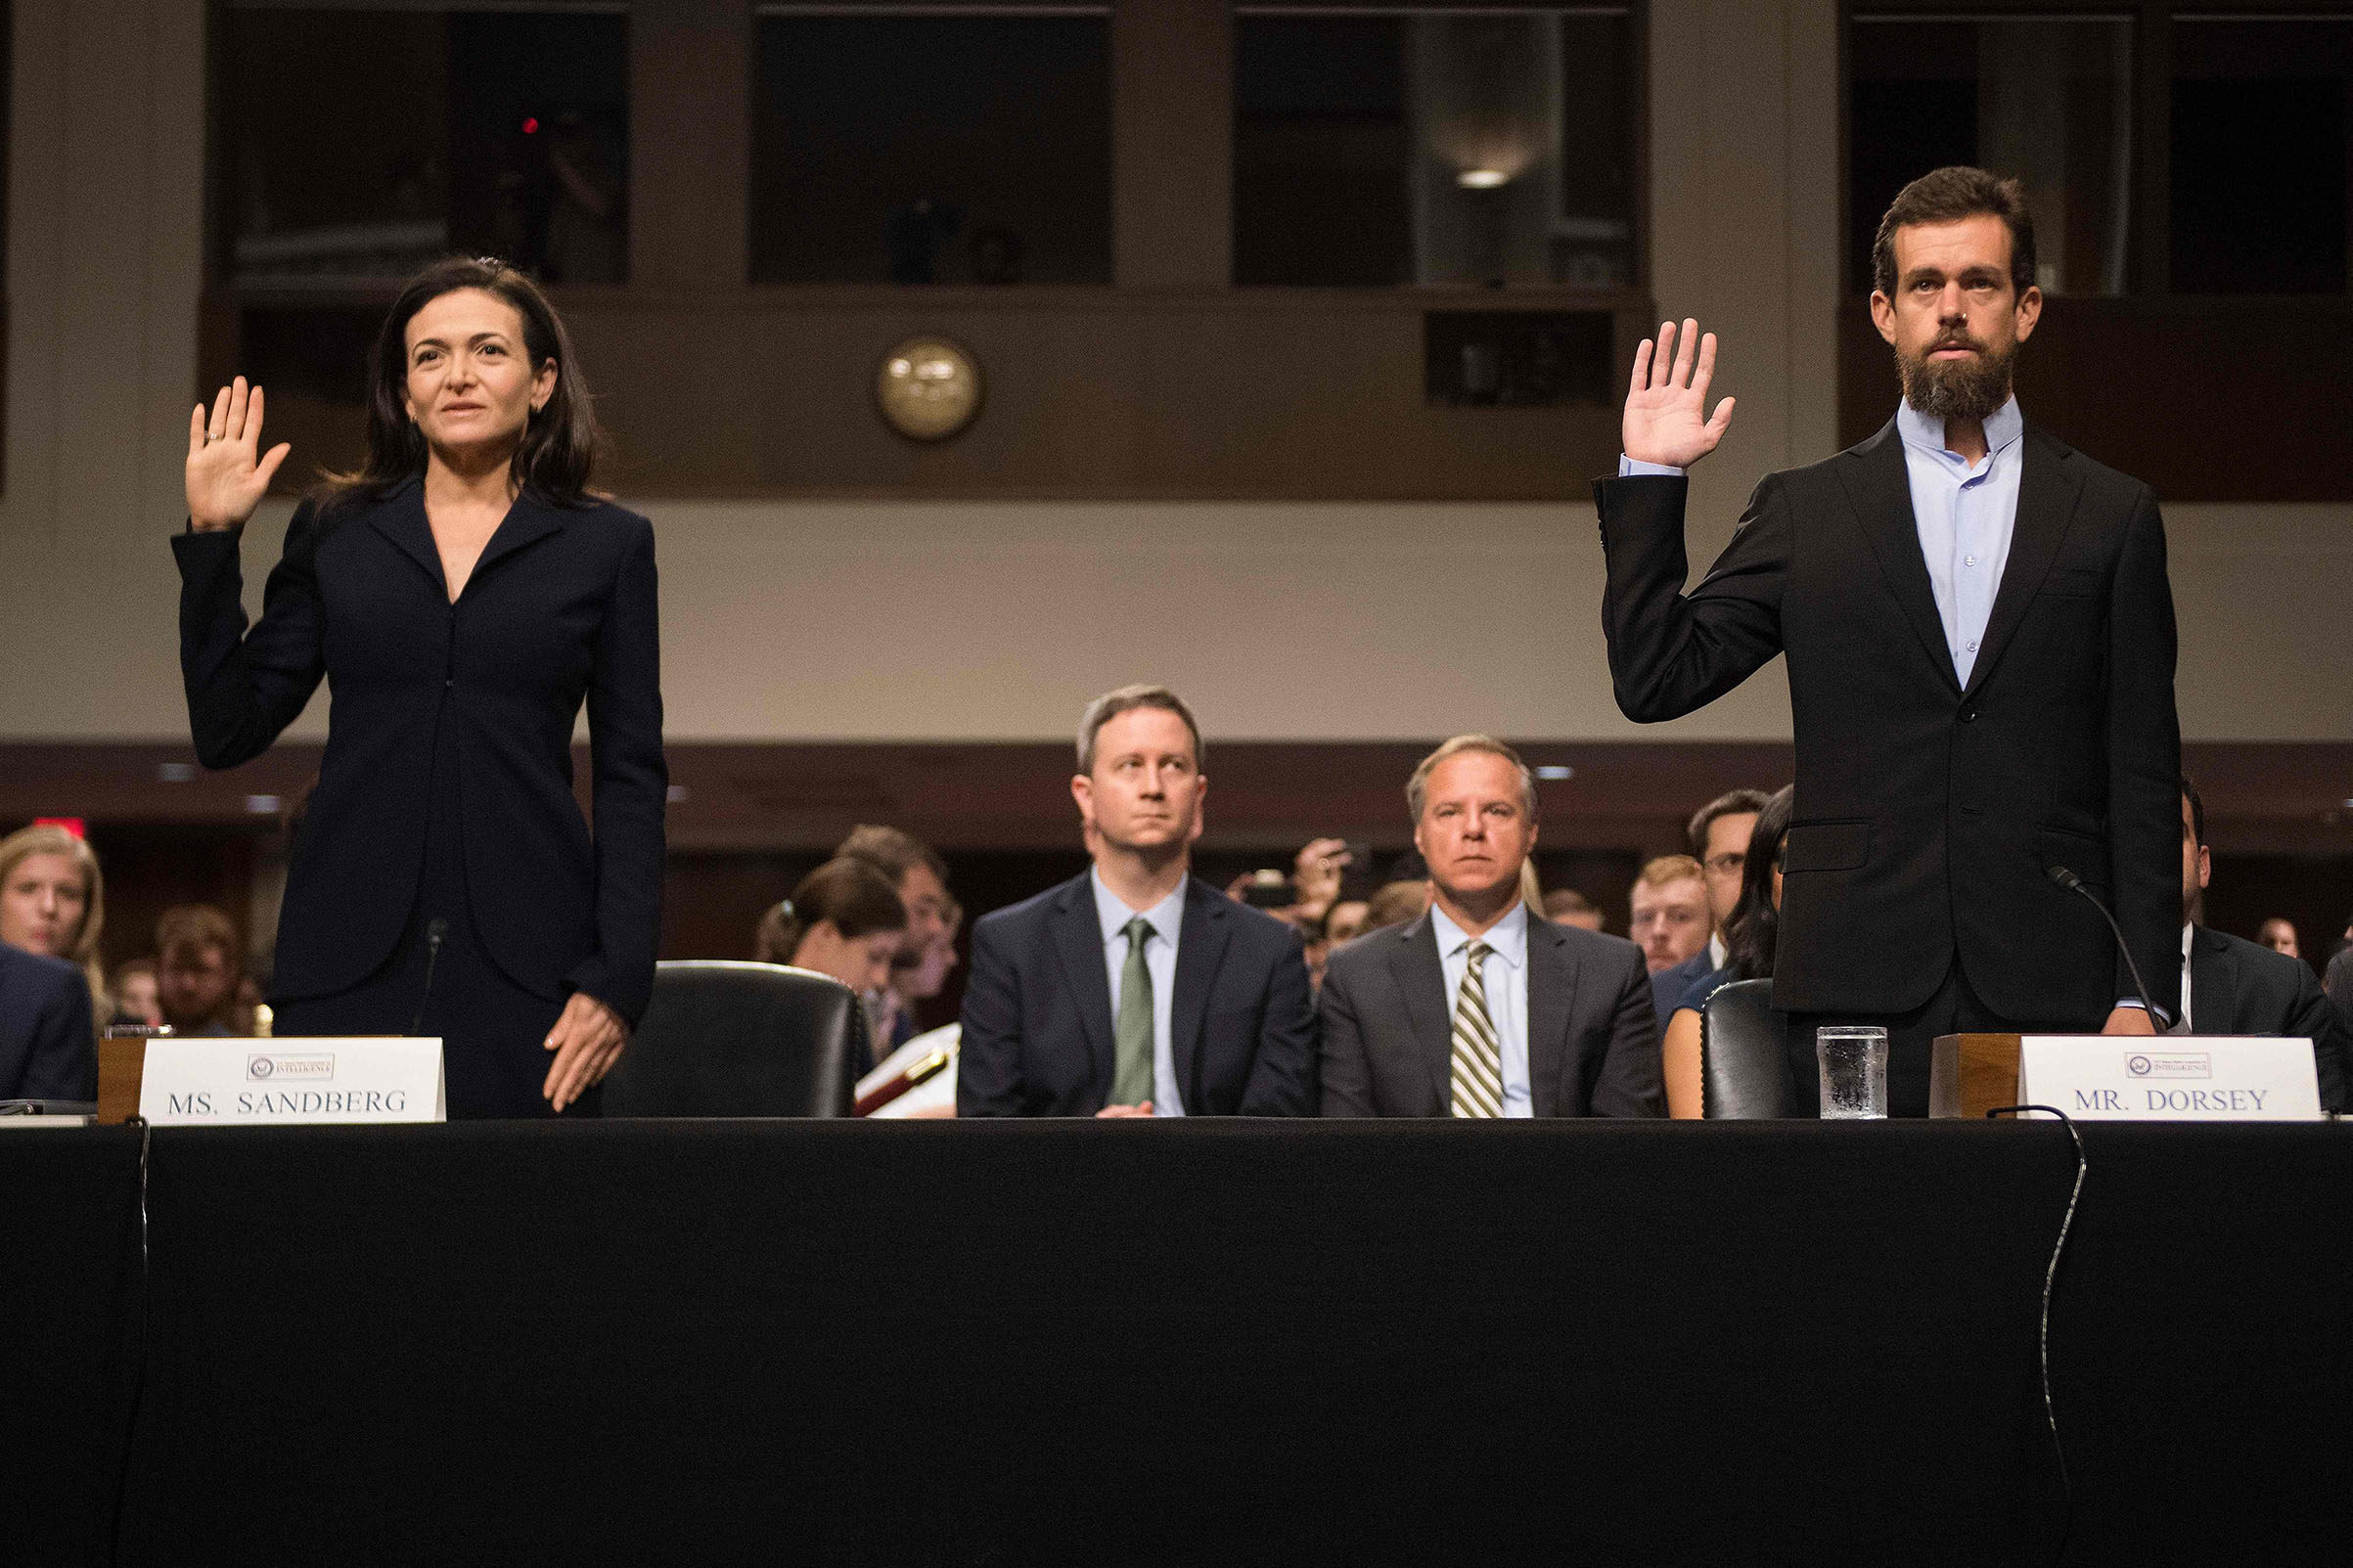 Facebook's Sheryl Sandberg and Twitter's Jack Dorsey testify before the U.S. Senate in Washington on Sept. 5